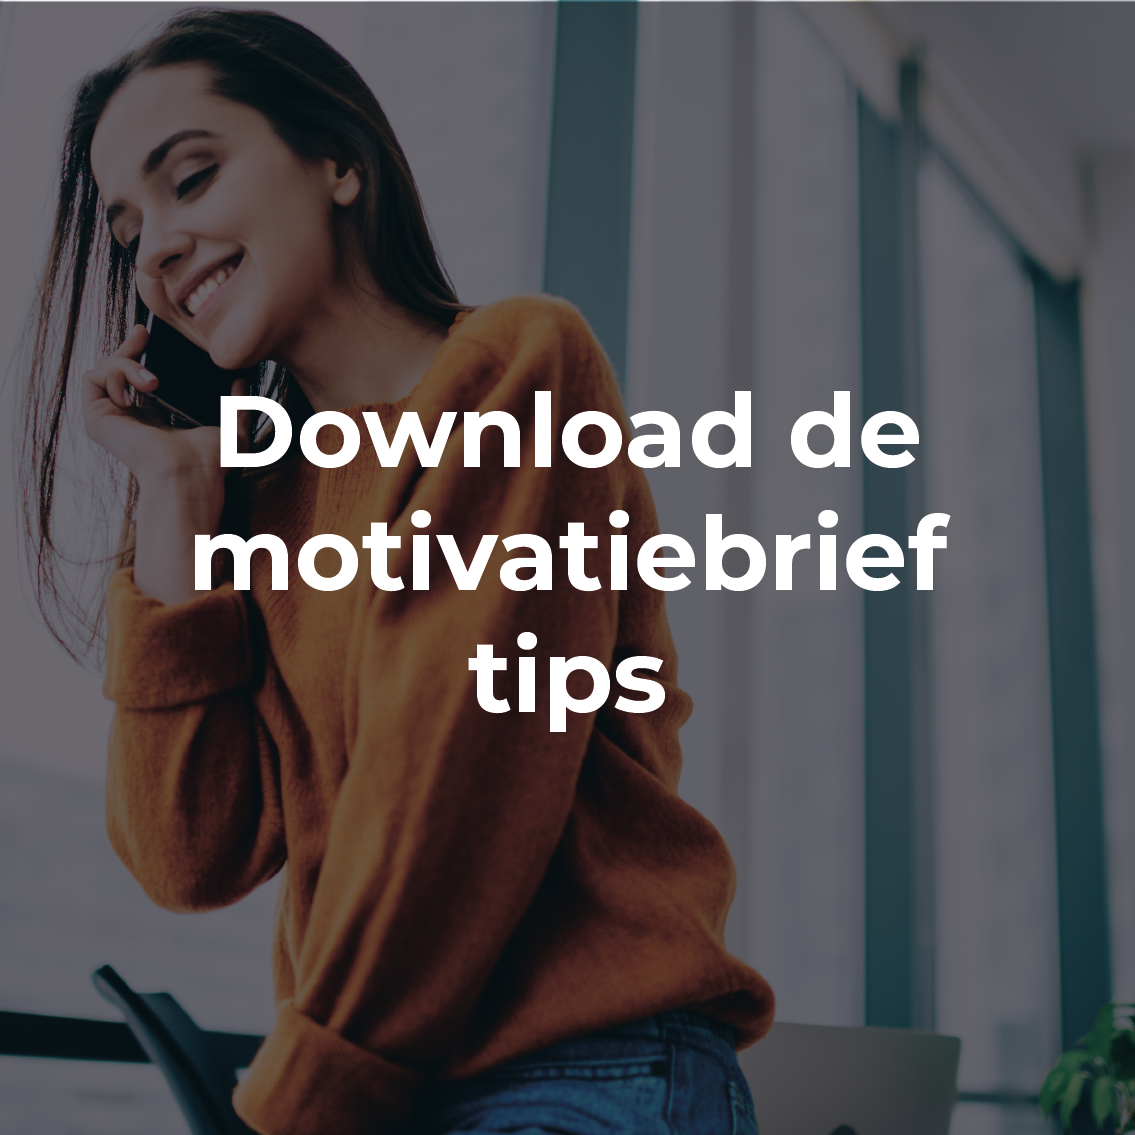 Download de motivatiebrief tips